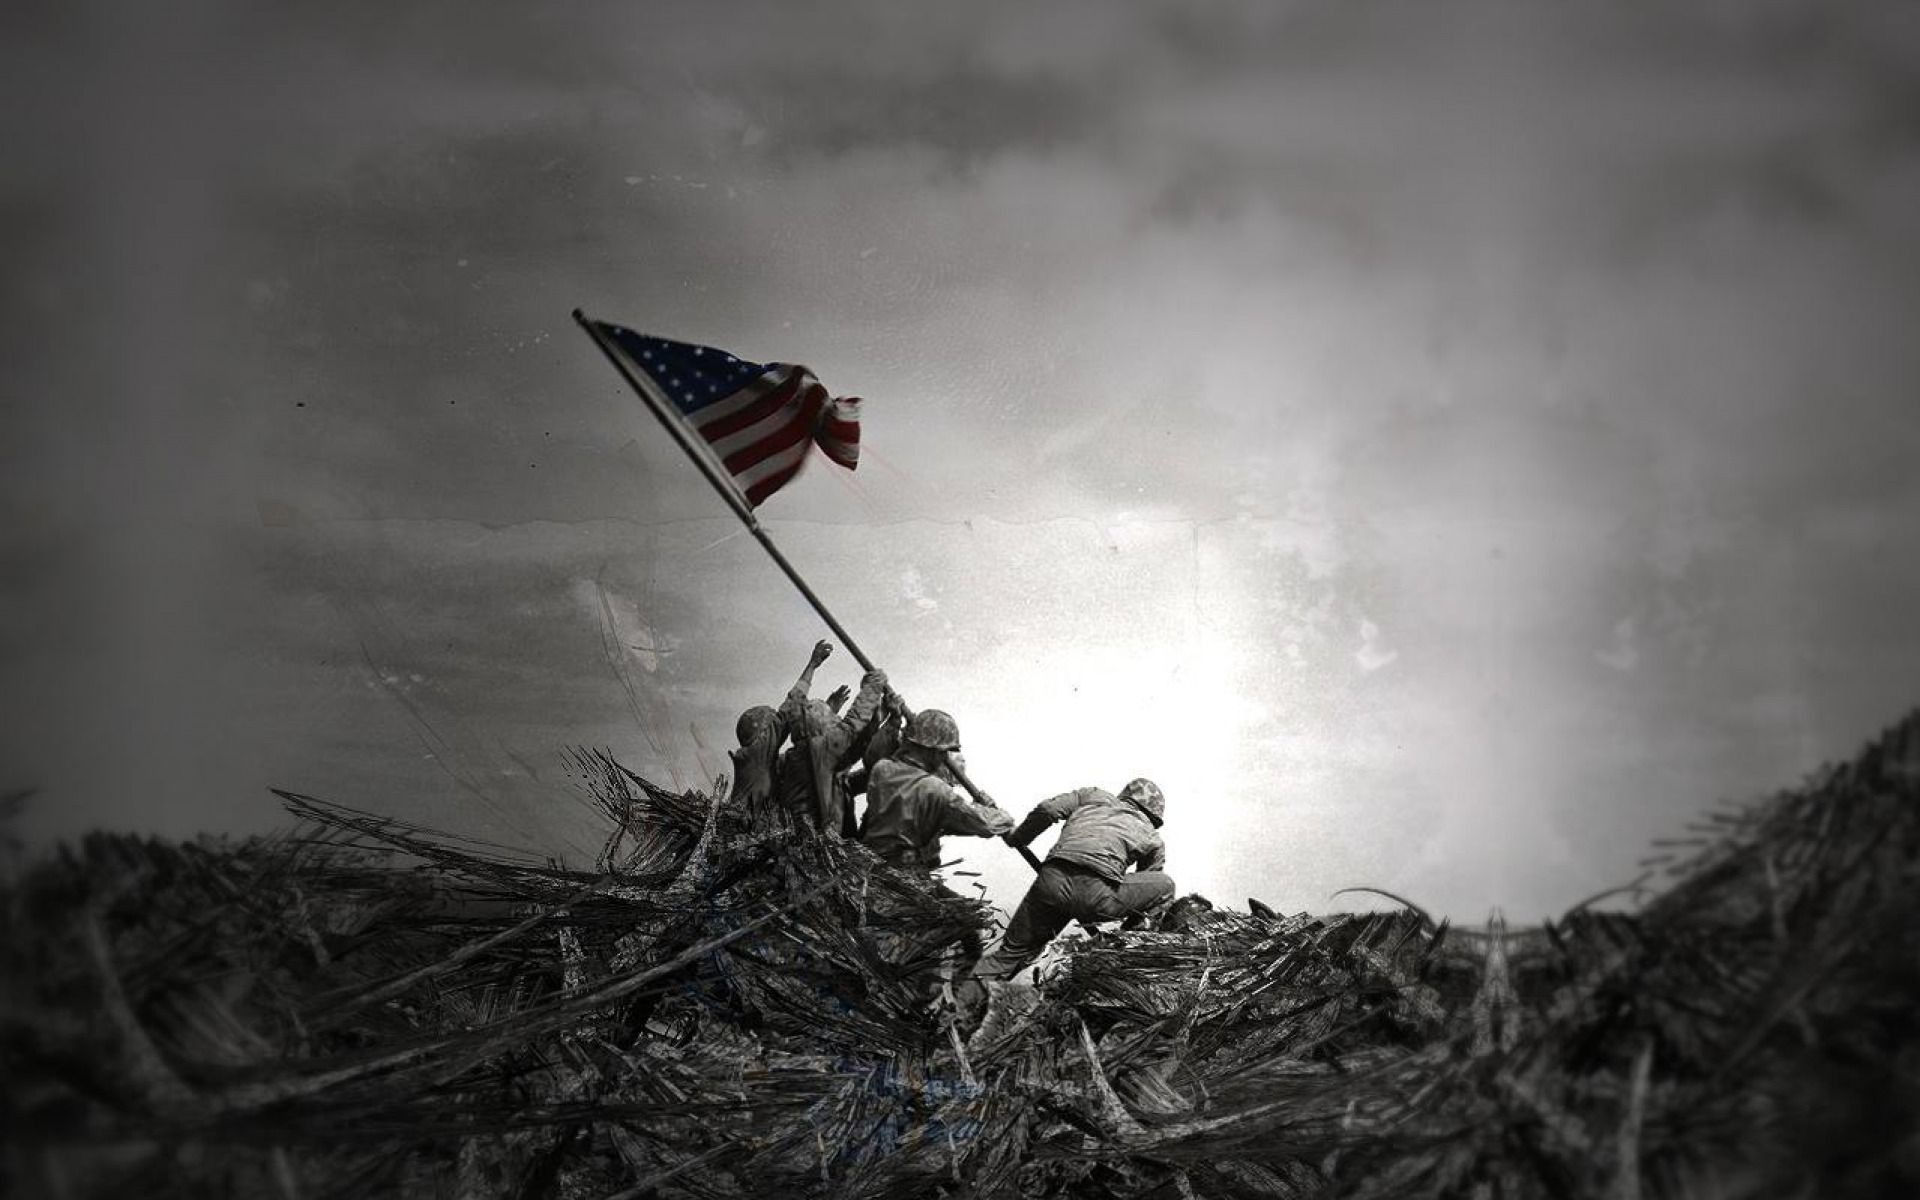 Res: 1920x1200, DCF47: Iwo Jima Flag Raising Wallpaper,  px, by Deirdre Dibble